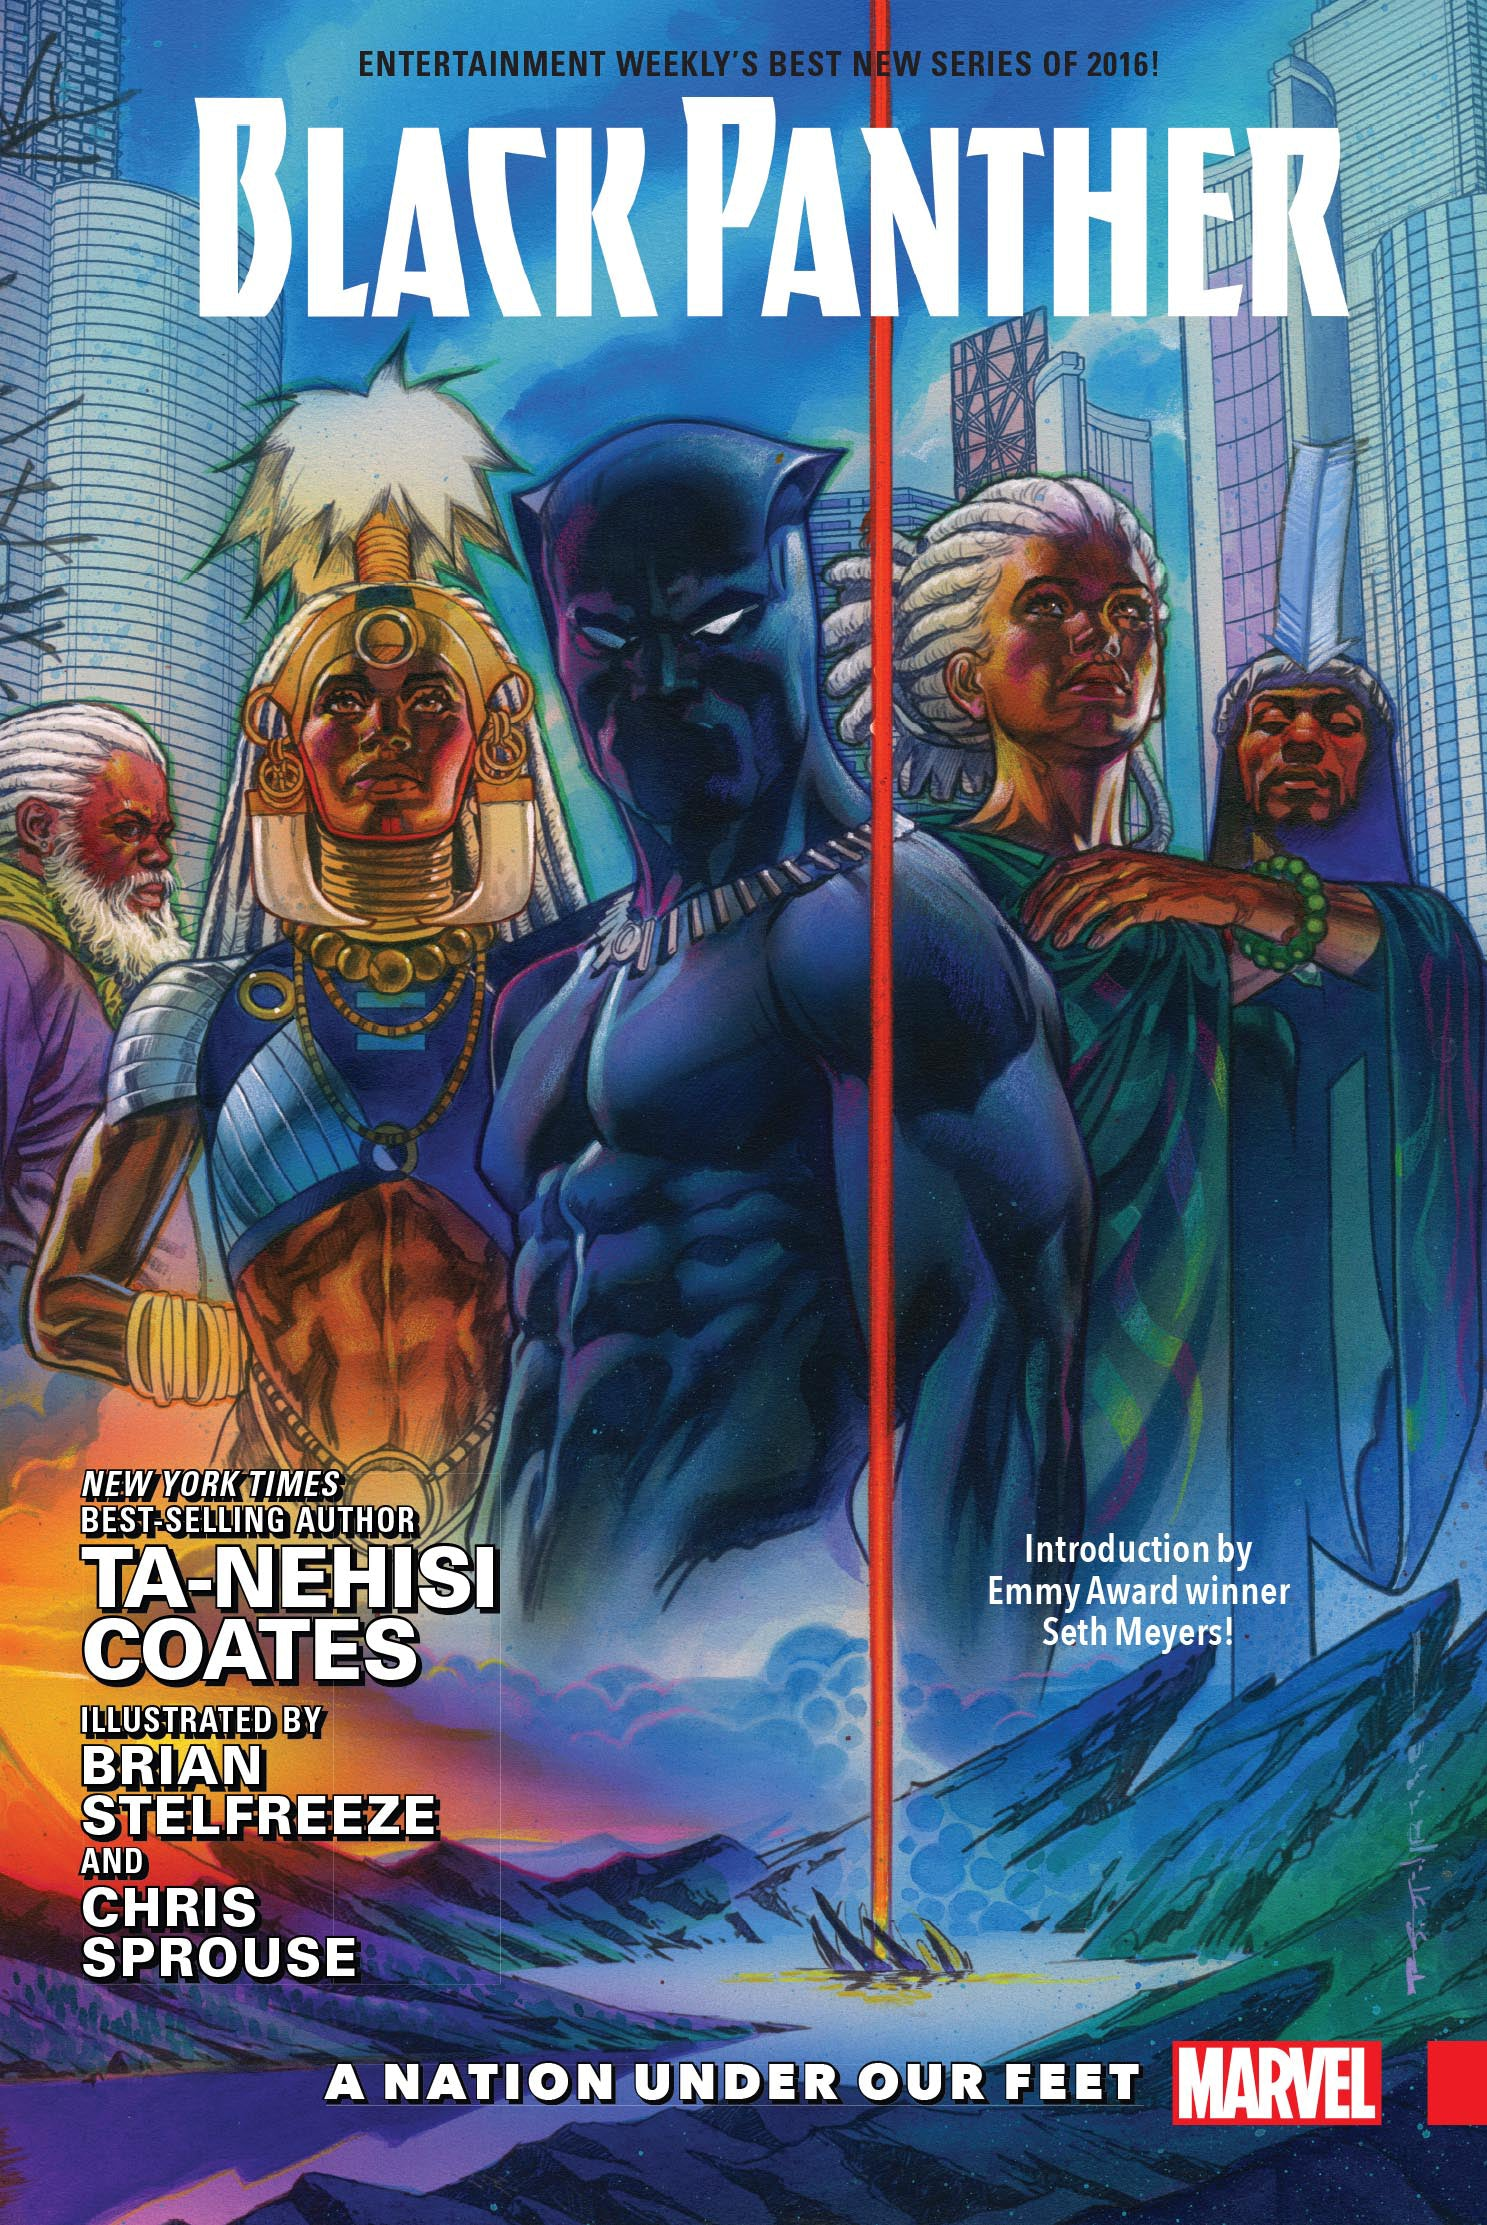 BLACK PANTHER HC VOL 01 A NATION UNDER OUR FEET | Phoenix Comics and Games